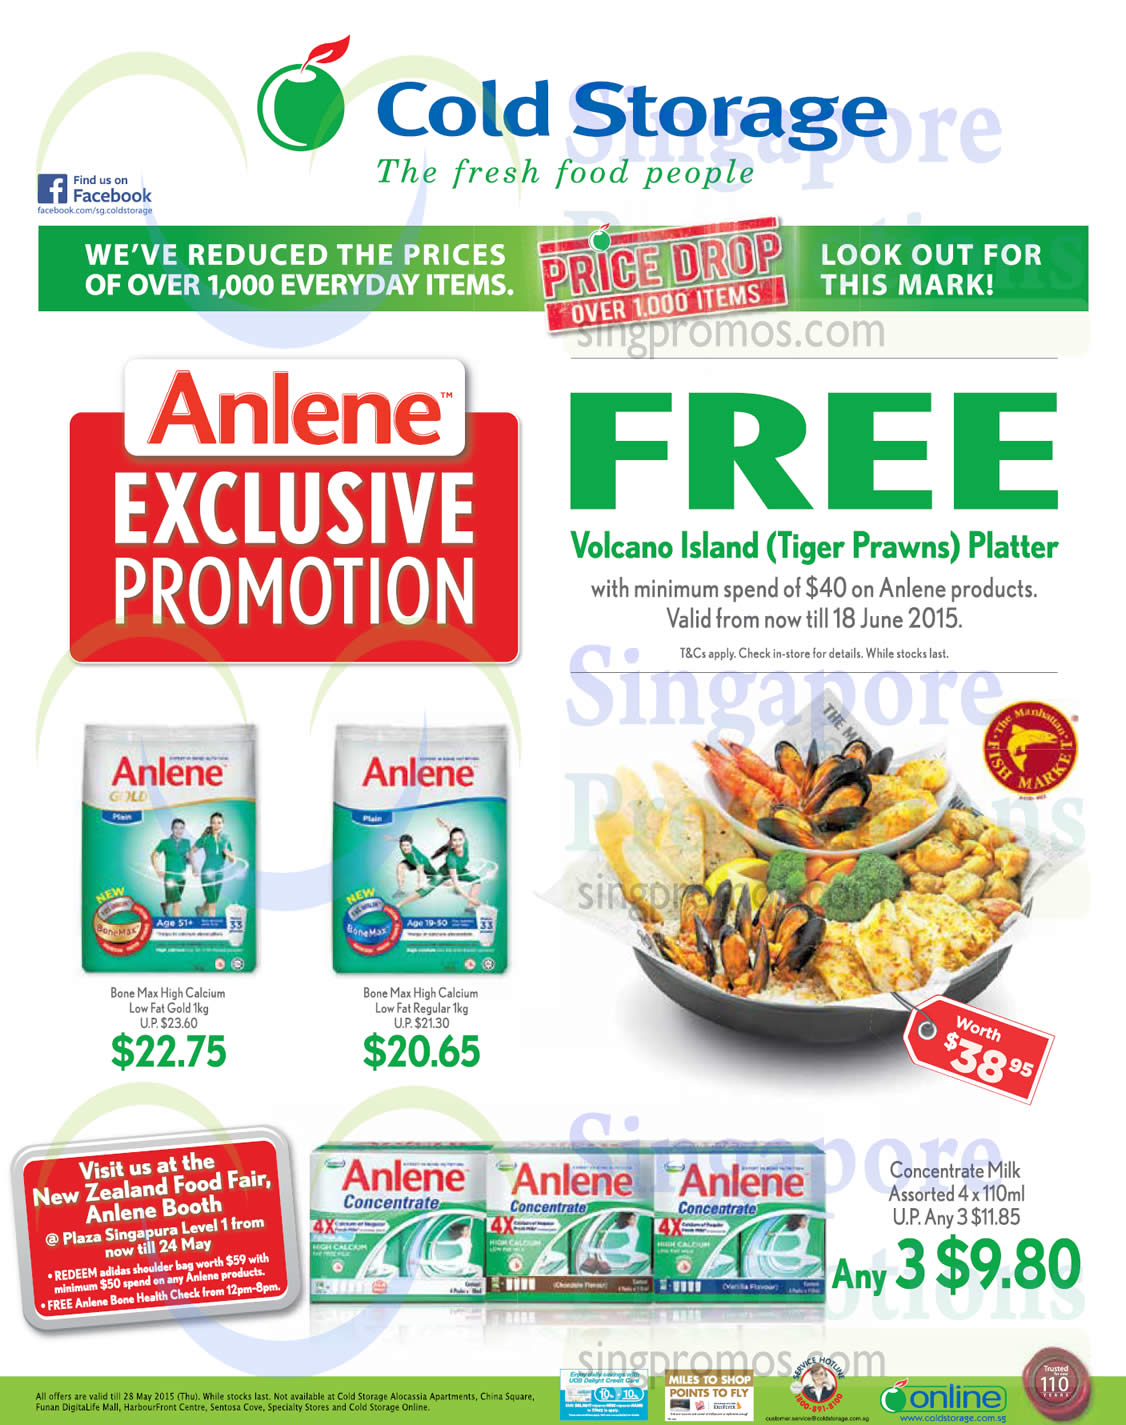 Cold Storage Anlene 22 May 2015